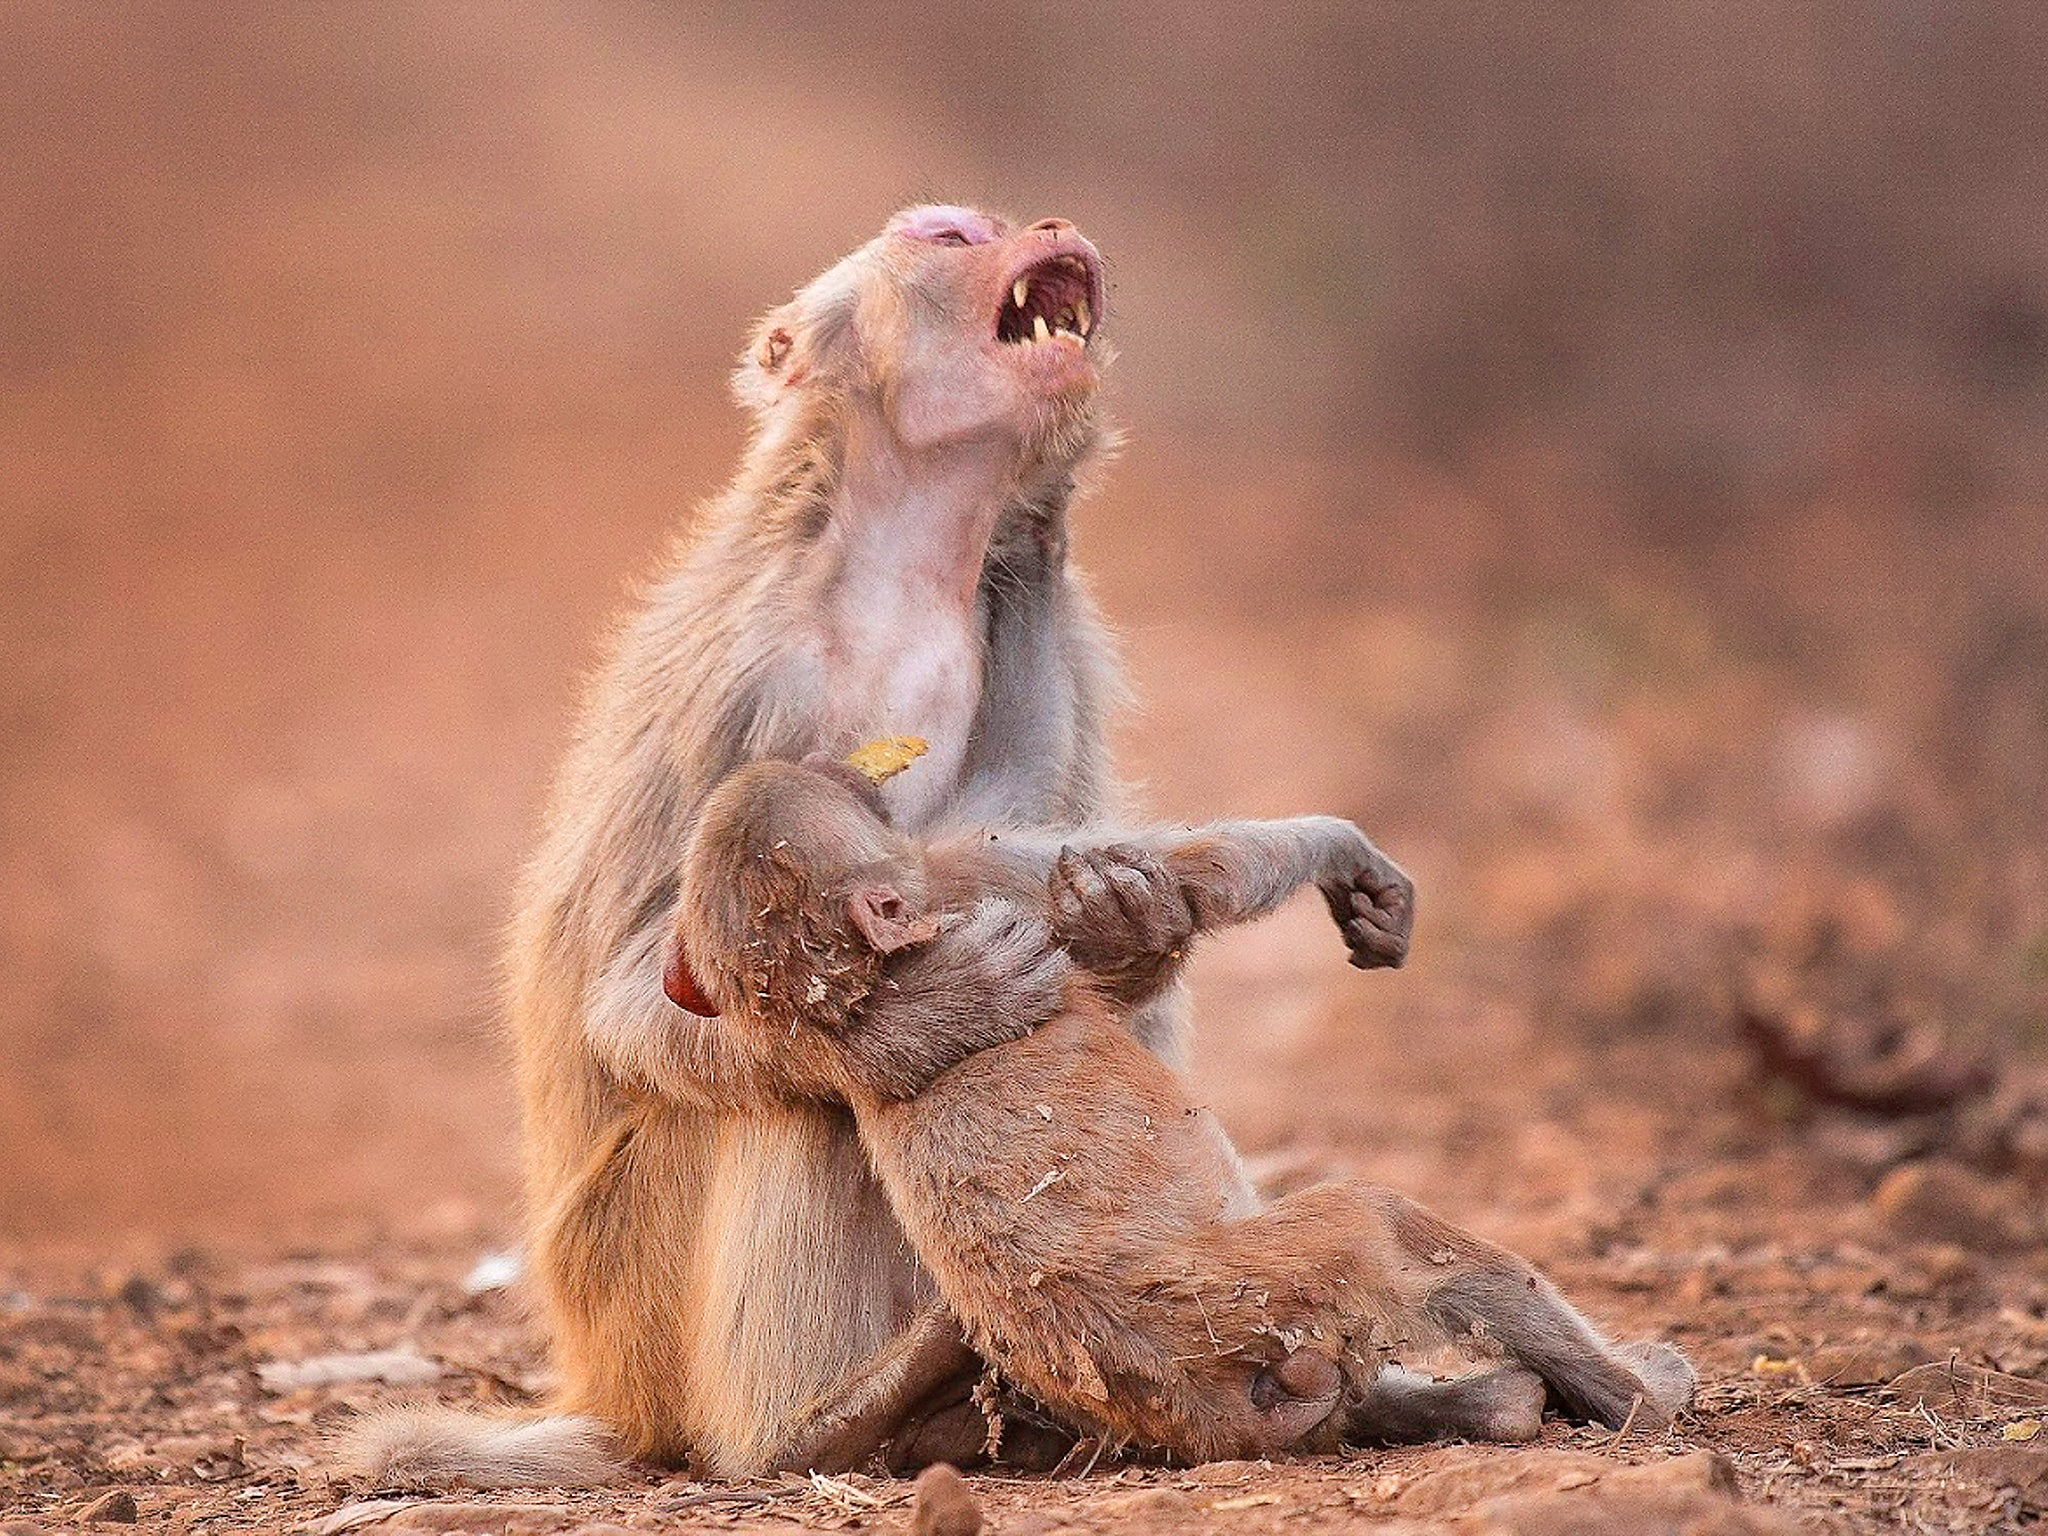 Monkey appears to mourn 'dead' infant in moving photograph ...